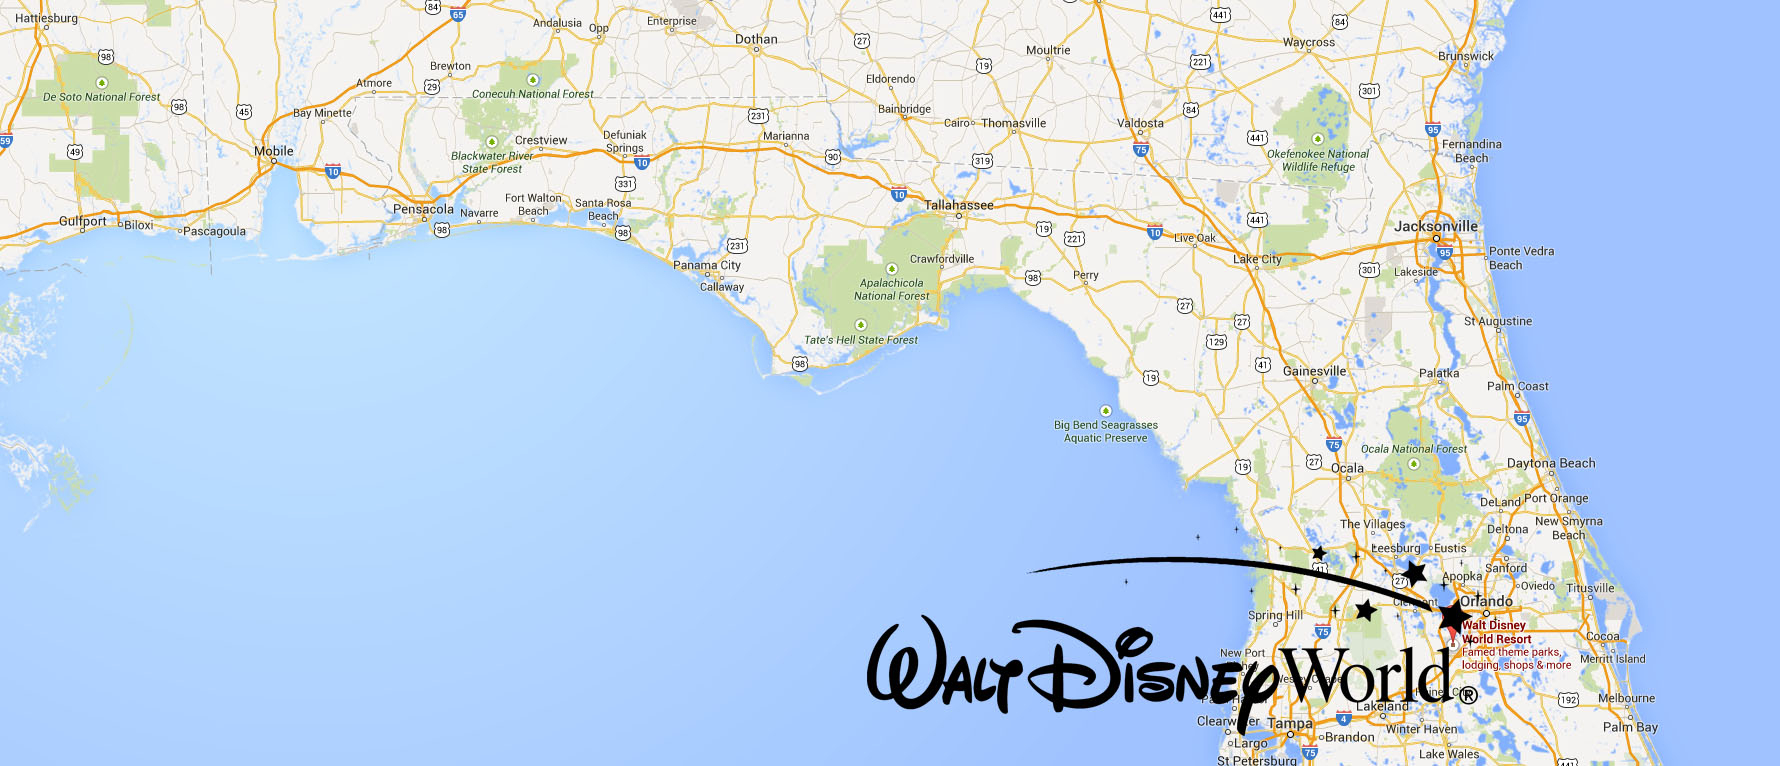 Disney World Orlando Florida Map - Map Of Florida Showing Disney World